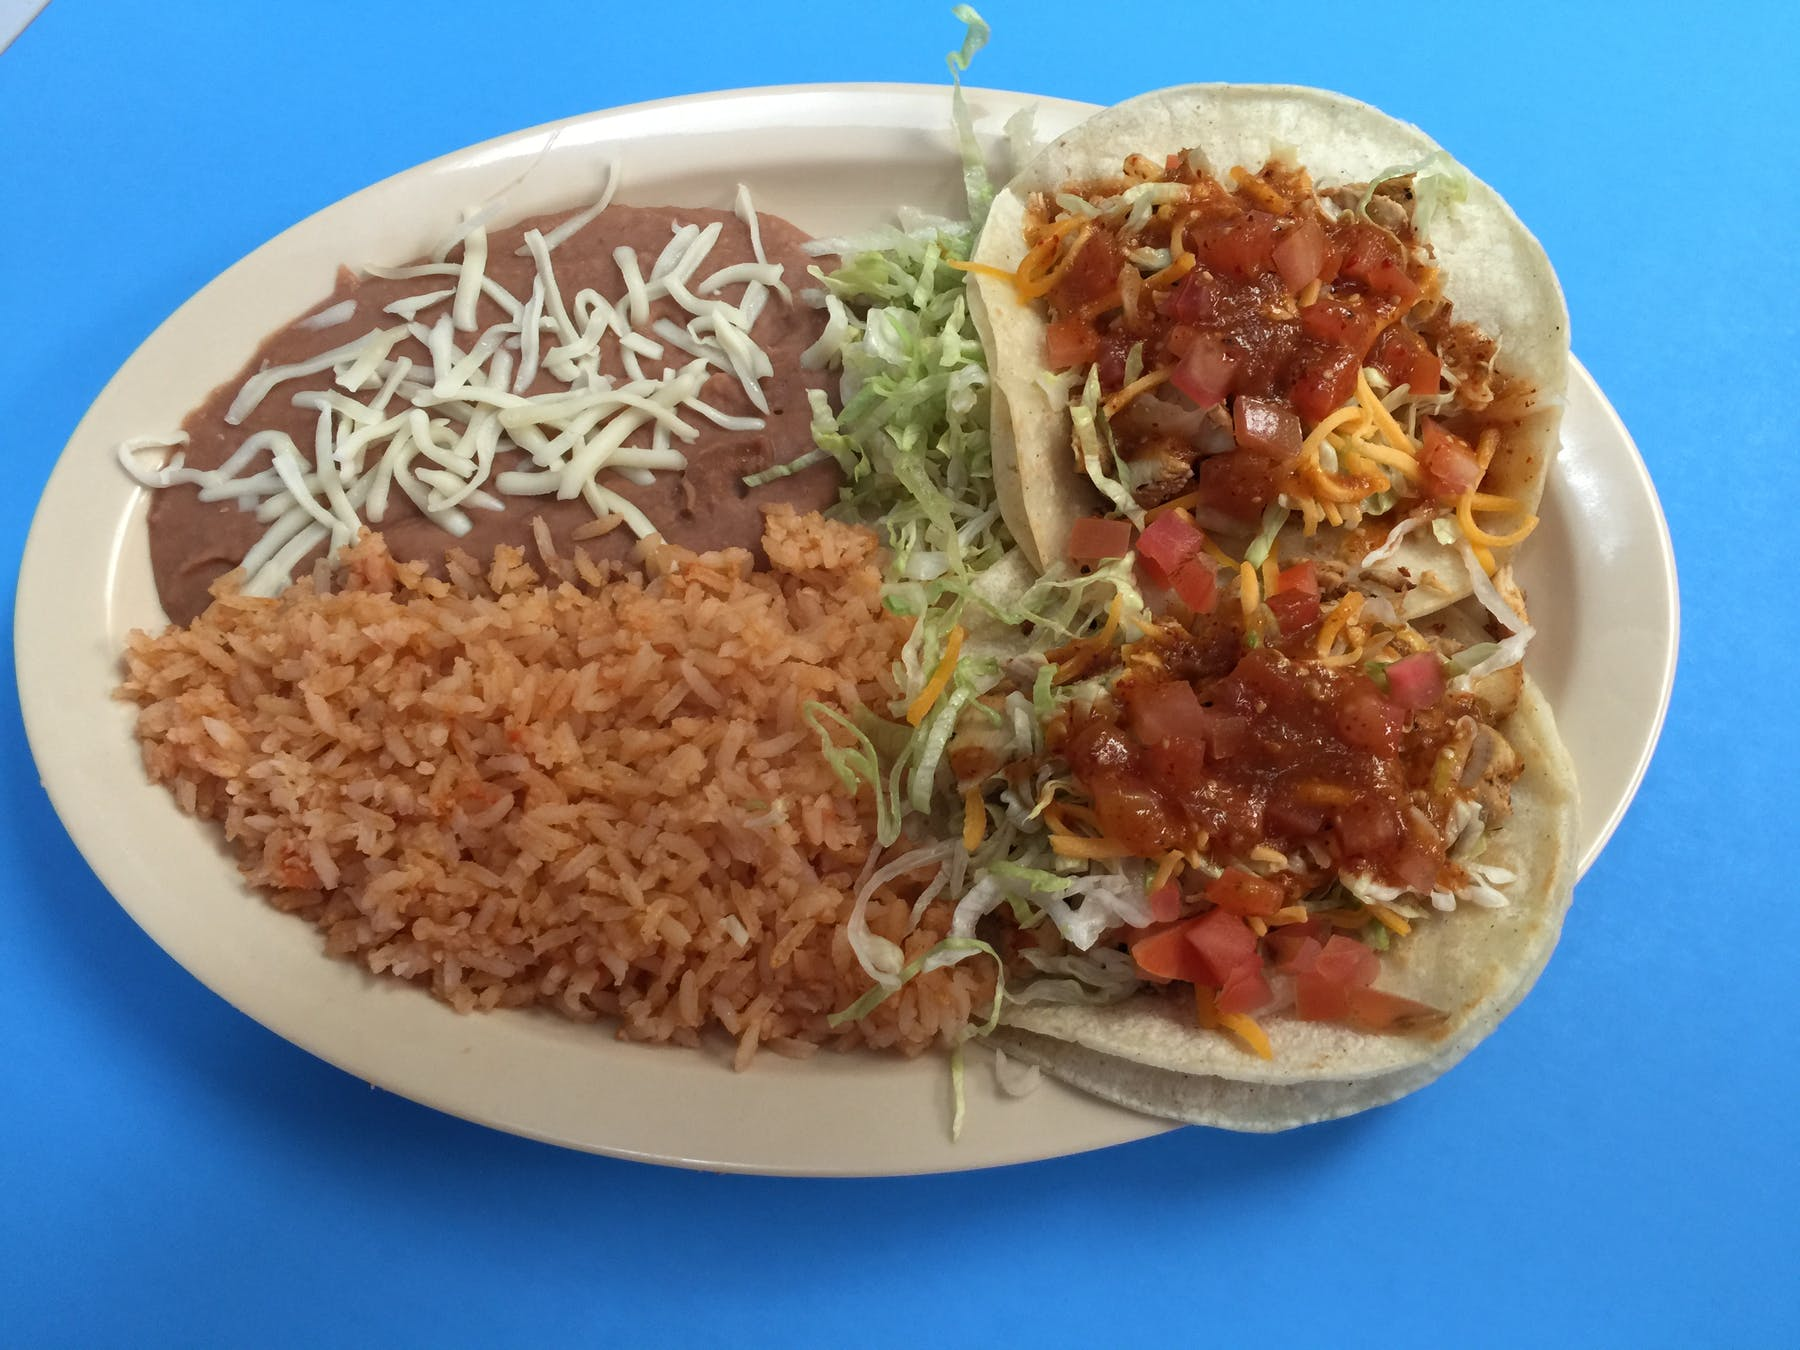 hash browns, rice, beans and tacos